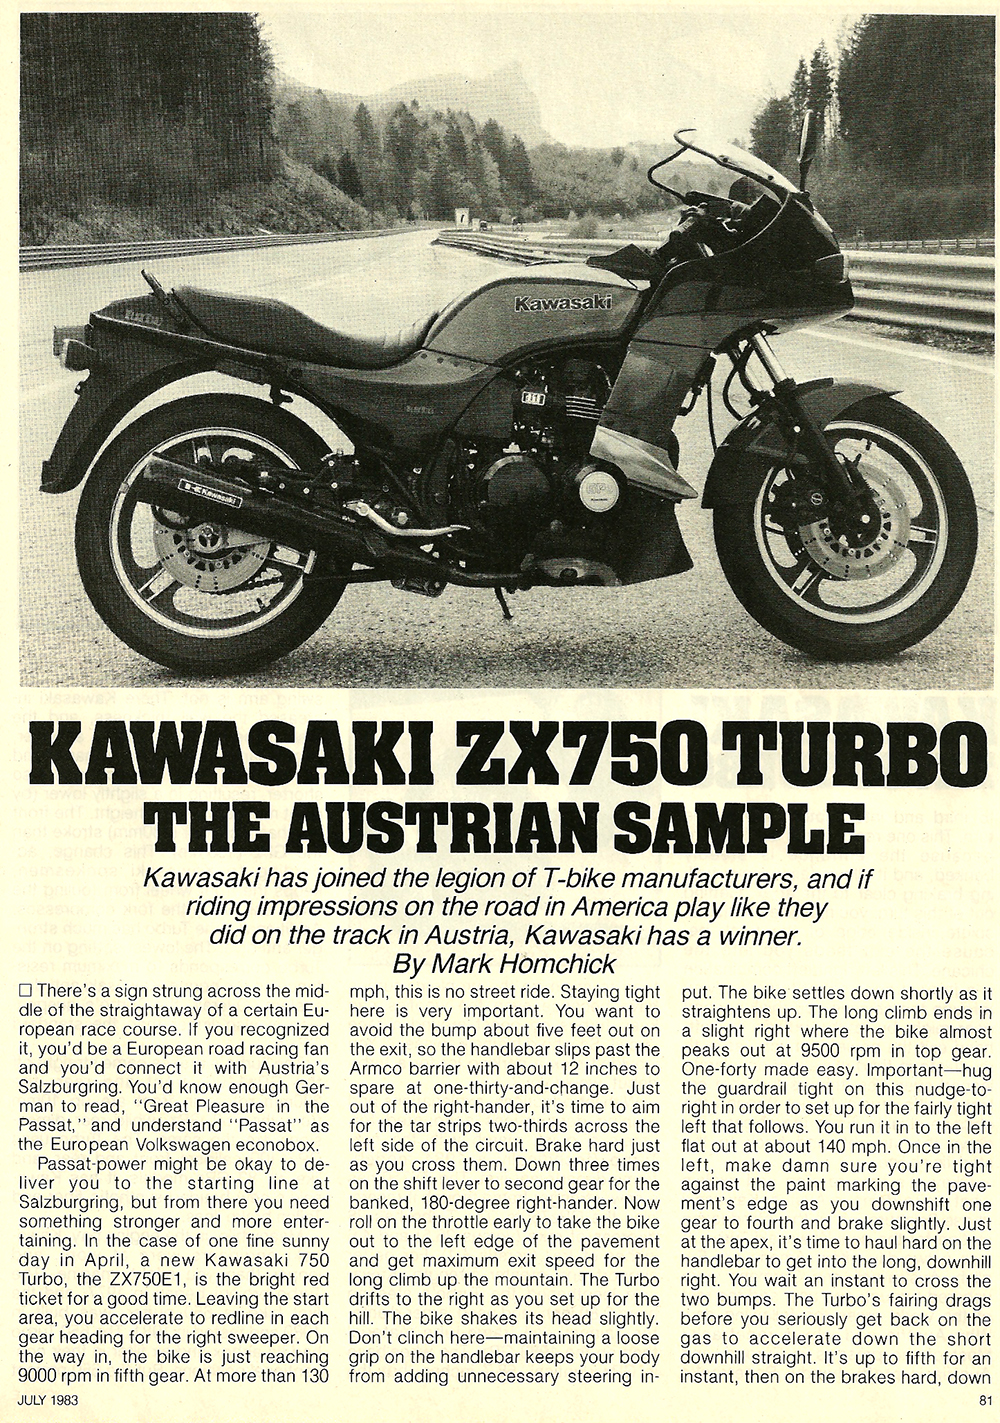 1983 Kawasaki ZX750 Turbo road test 1.jpg